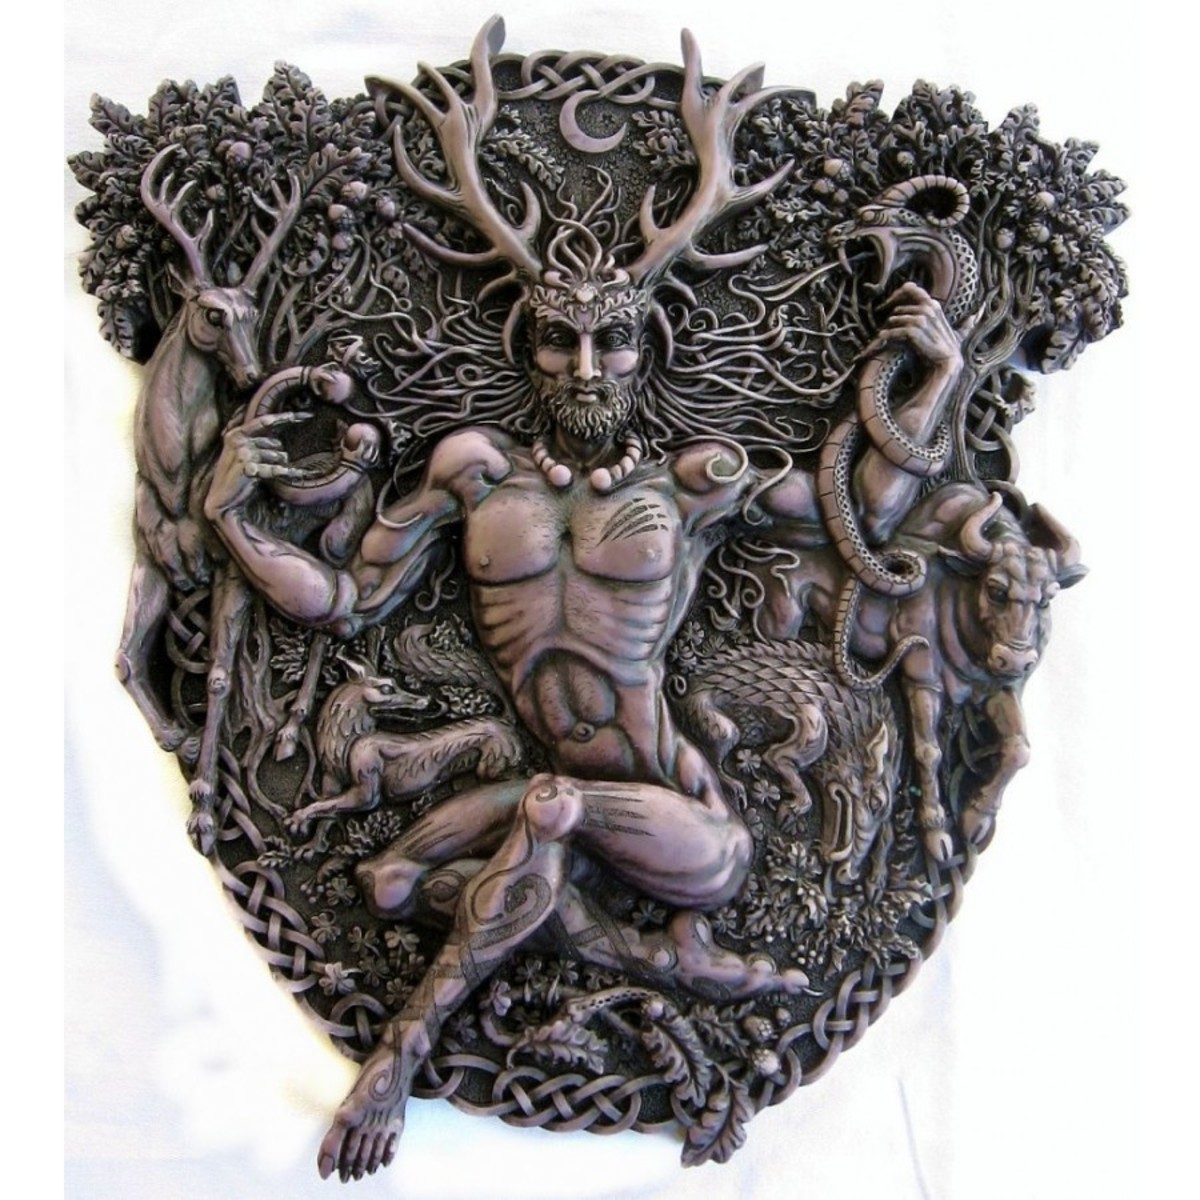 An image of the antlered god Cernunnos - Continental version of Herne the Hunter